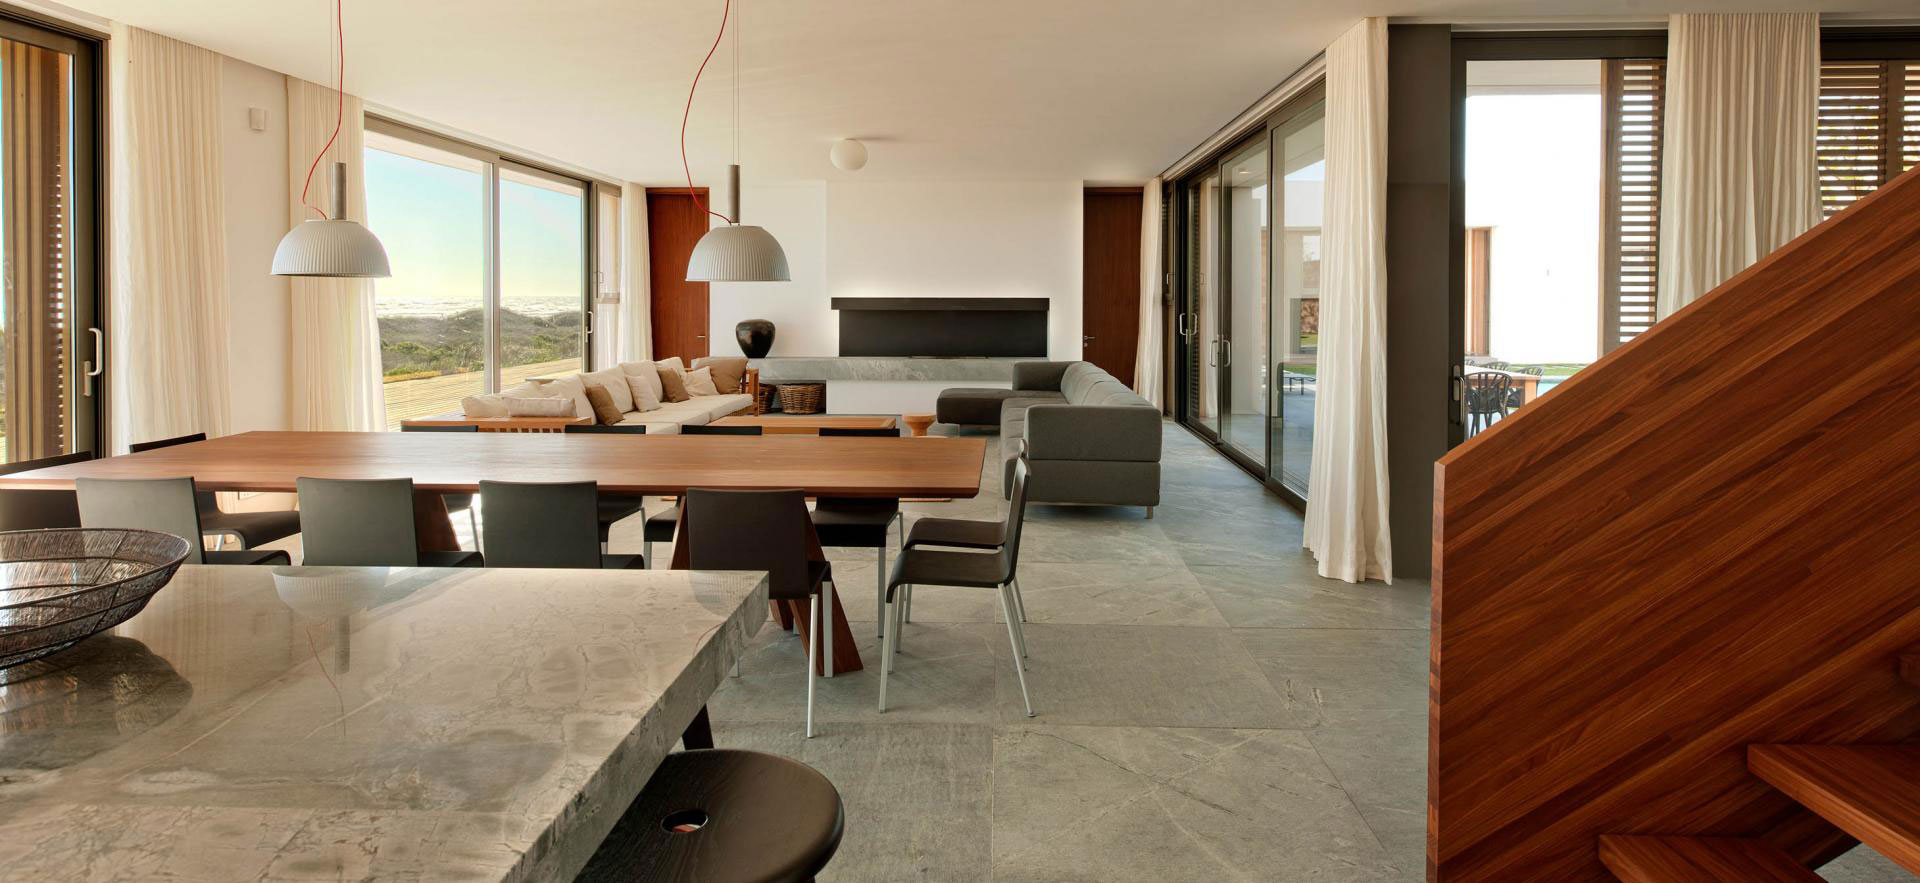 Open Plan Living Space, Dining Table, Beach Front Home in Cape Town, South Africa